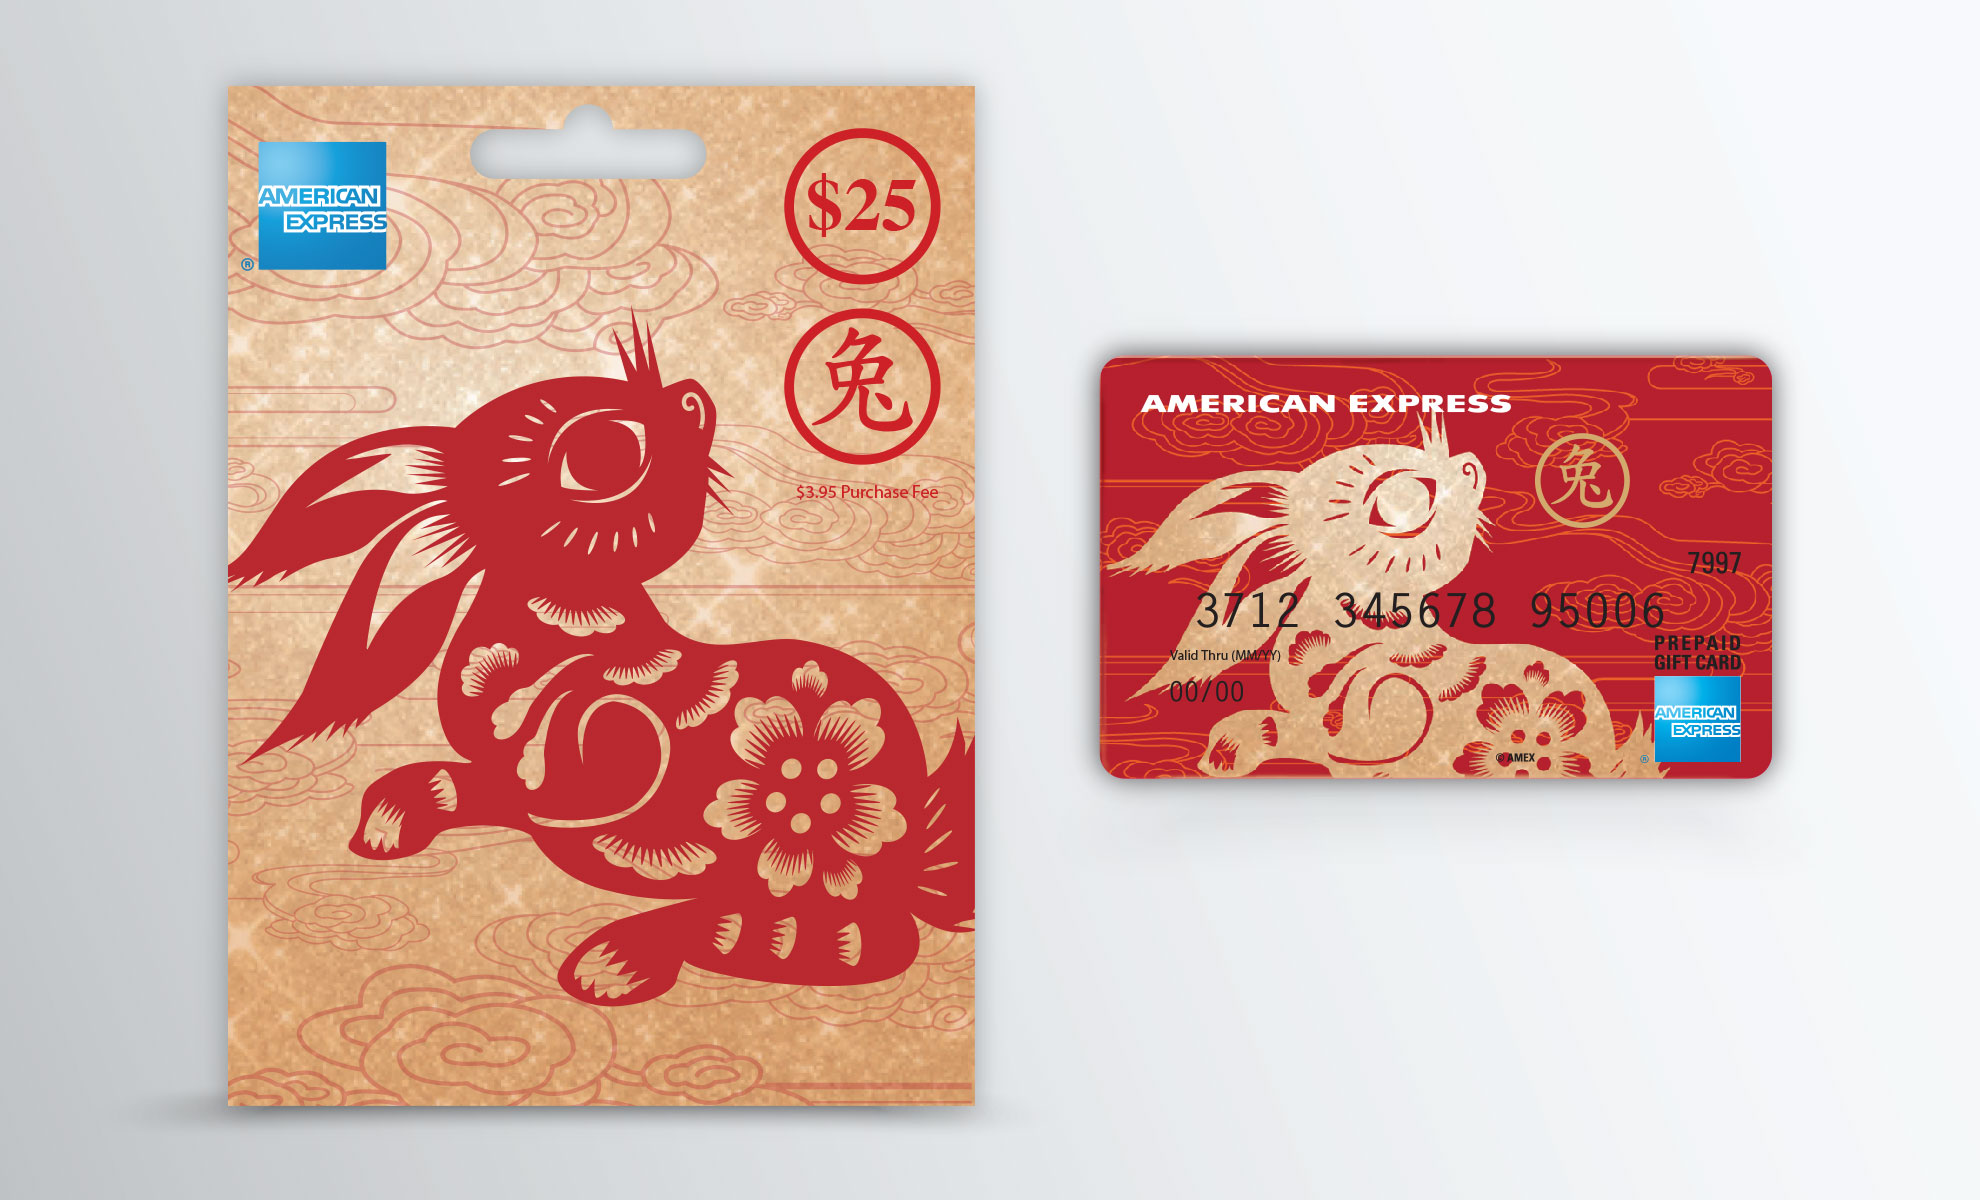 chinese folk art papercut style rabbit design on prepaid gift card